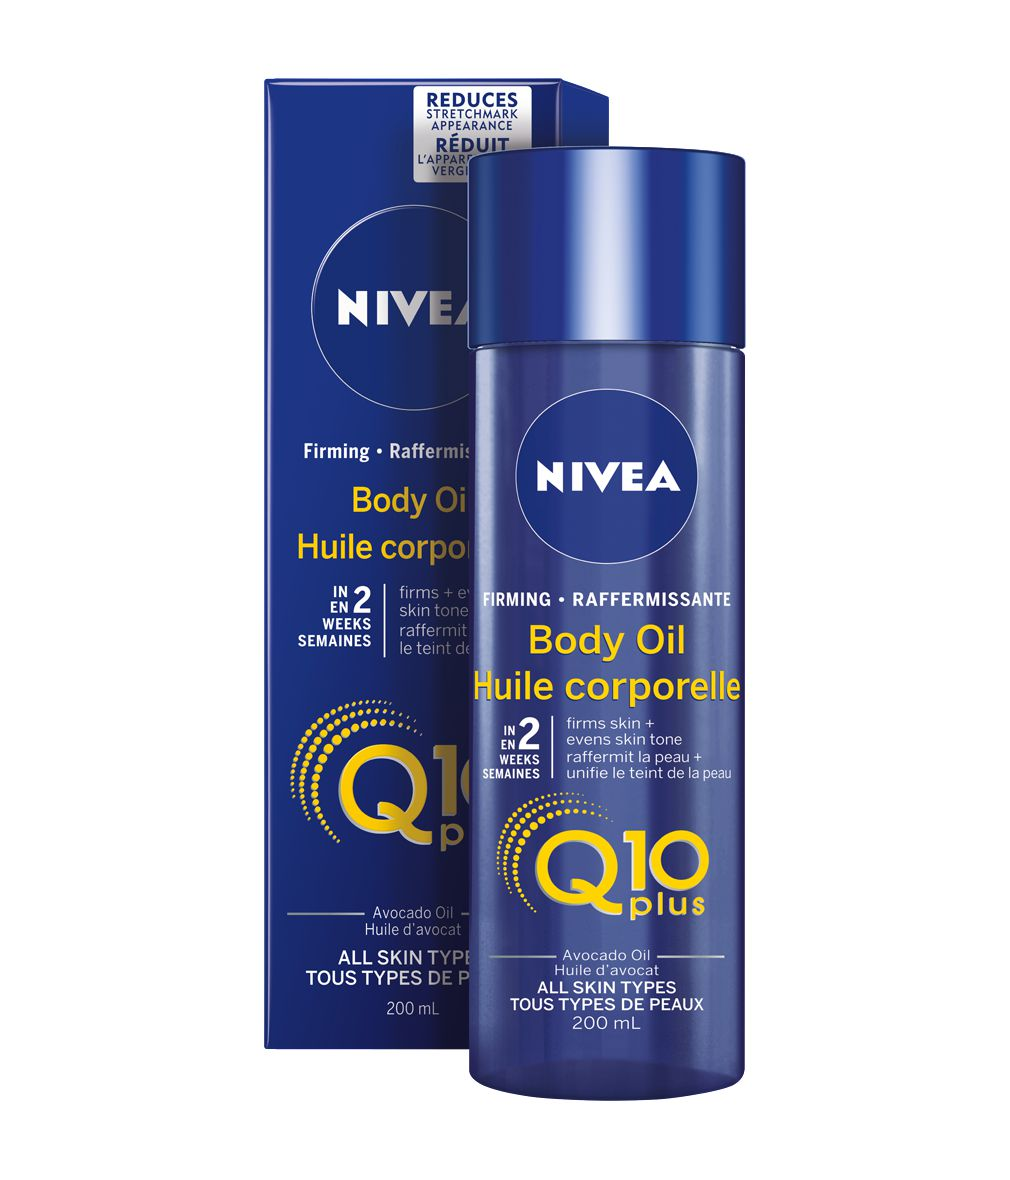 Nivea Firming Body Oil Q10 with Avocado Oil 200ml